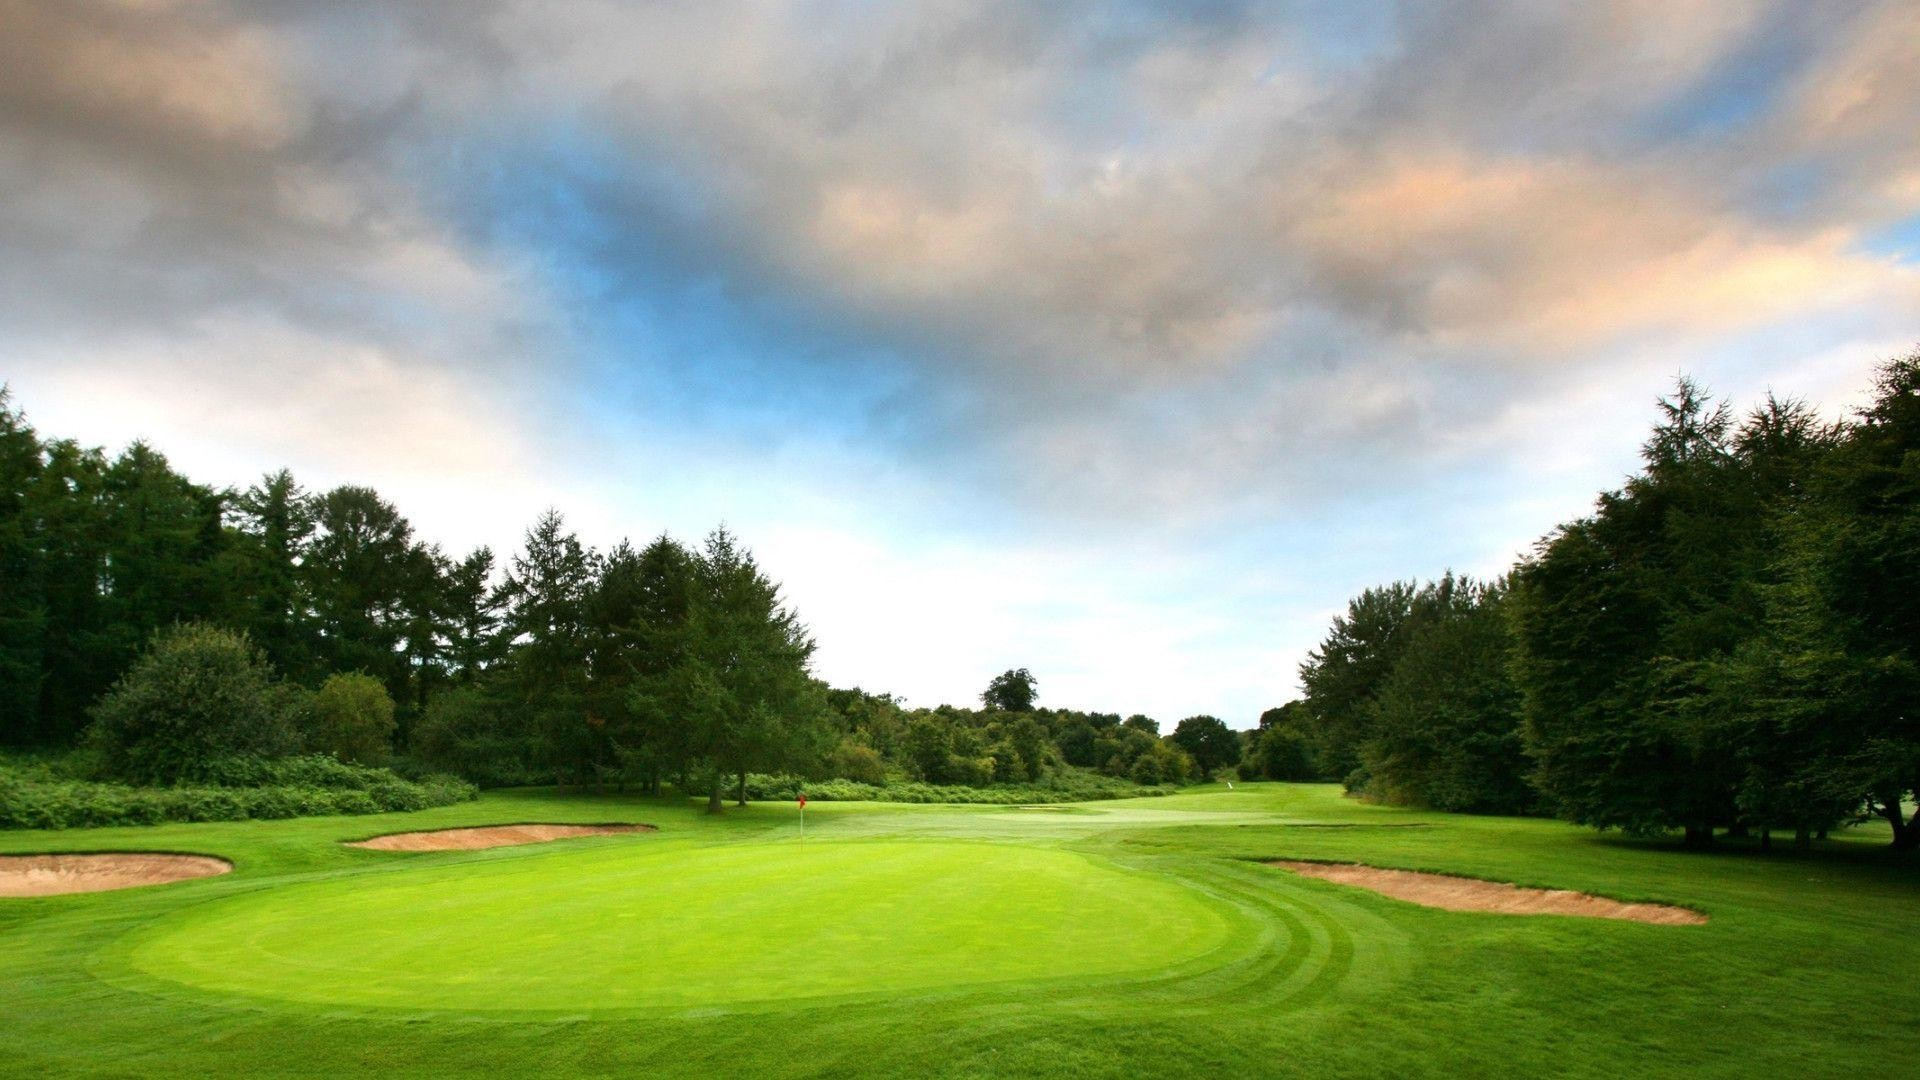 Cool Golf Backgrounds 60 Images